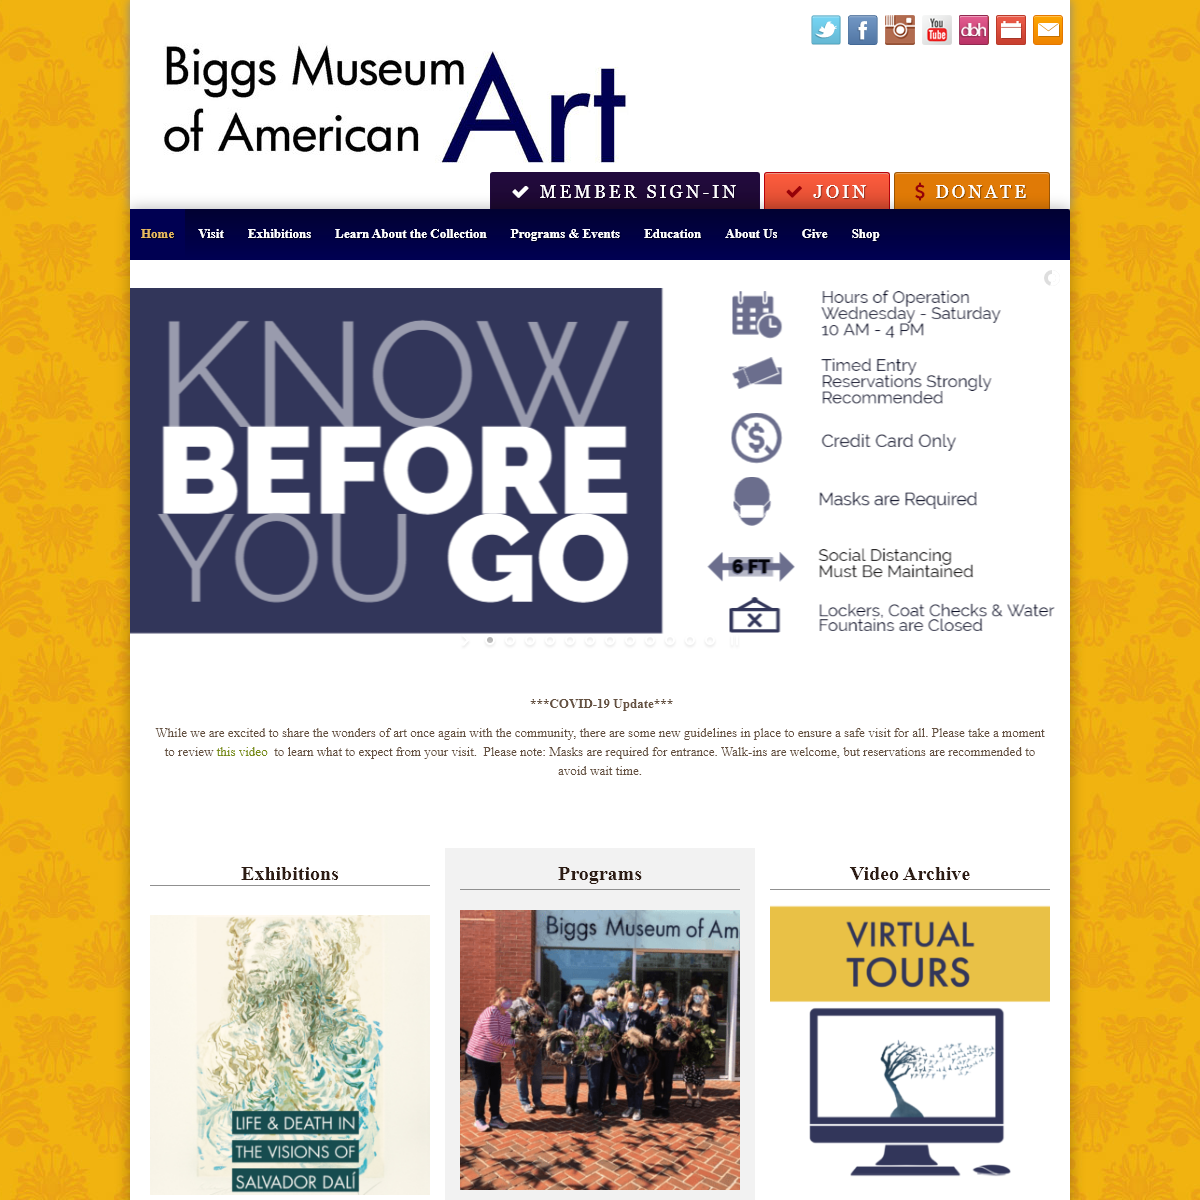 Biggs Museum of American Art